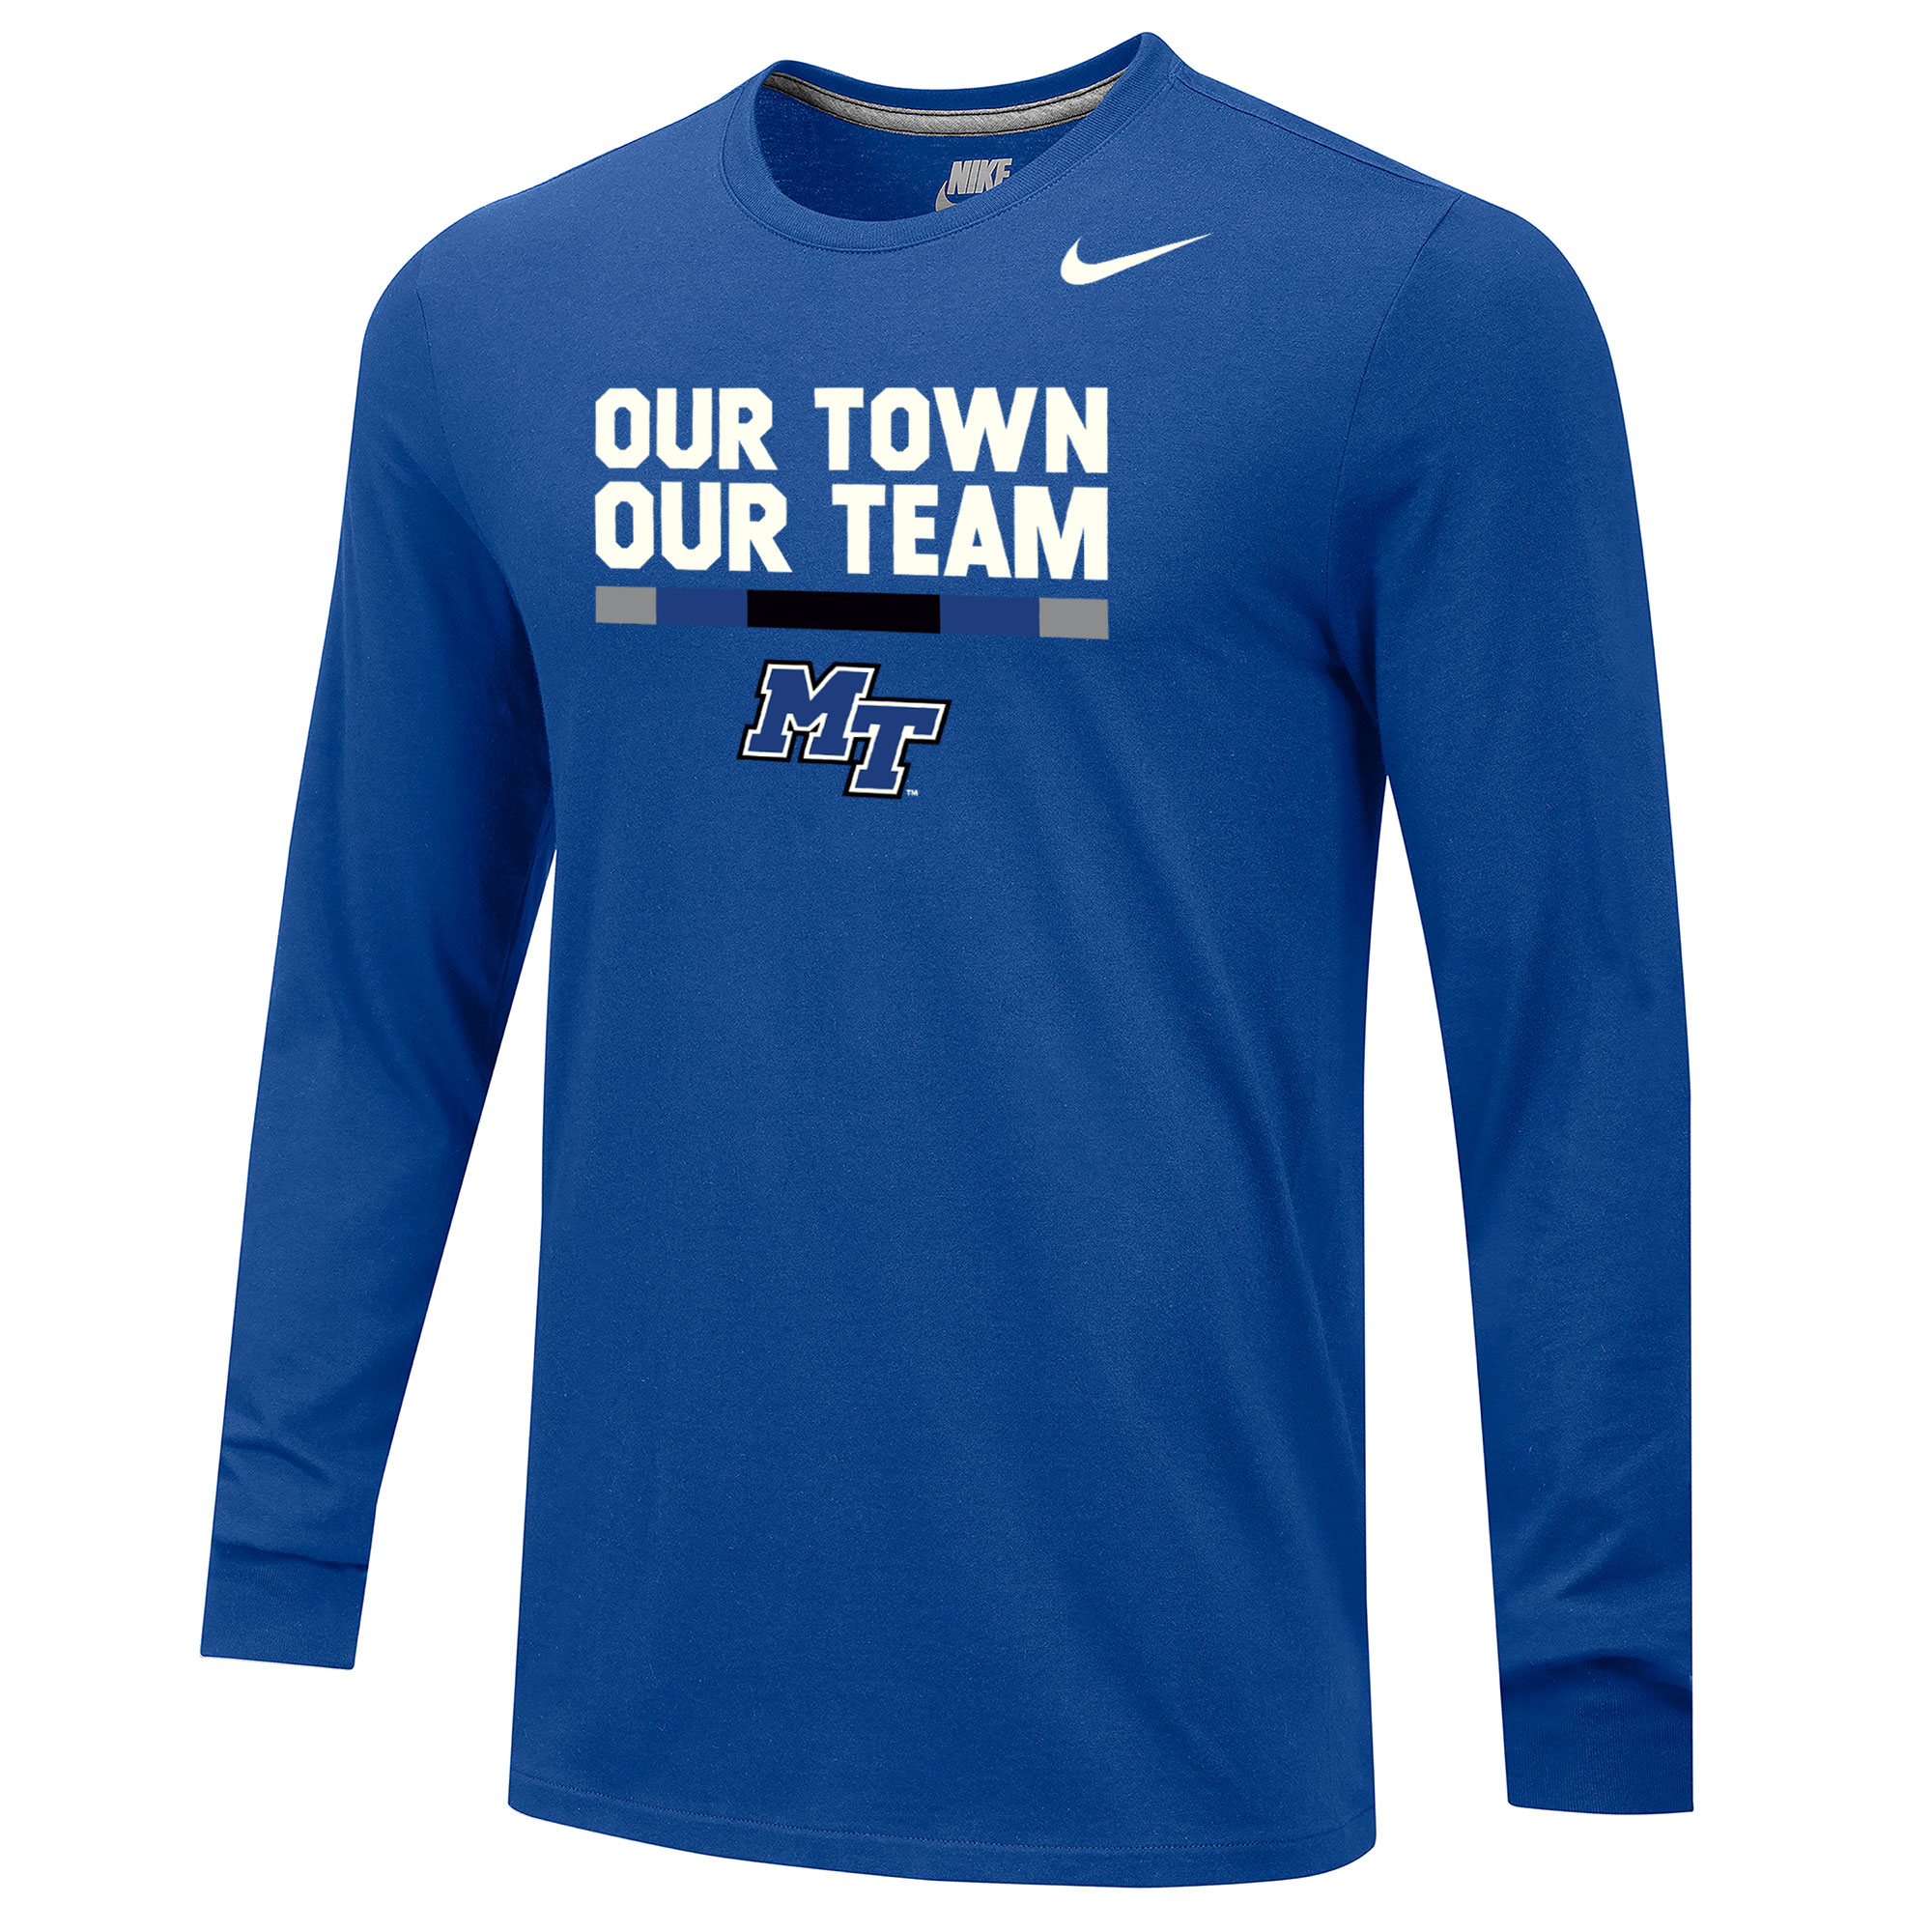 Our Town Our Team Core All Purpose Long Sleeve Shirt